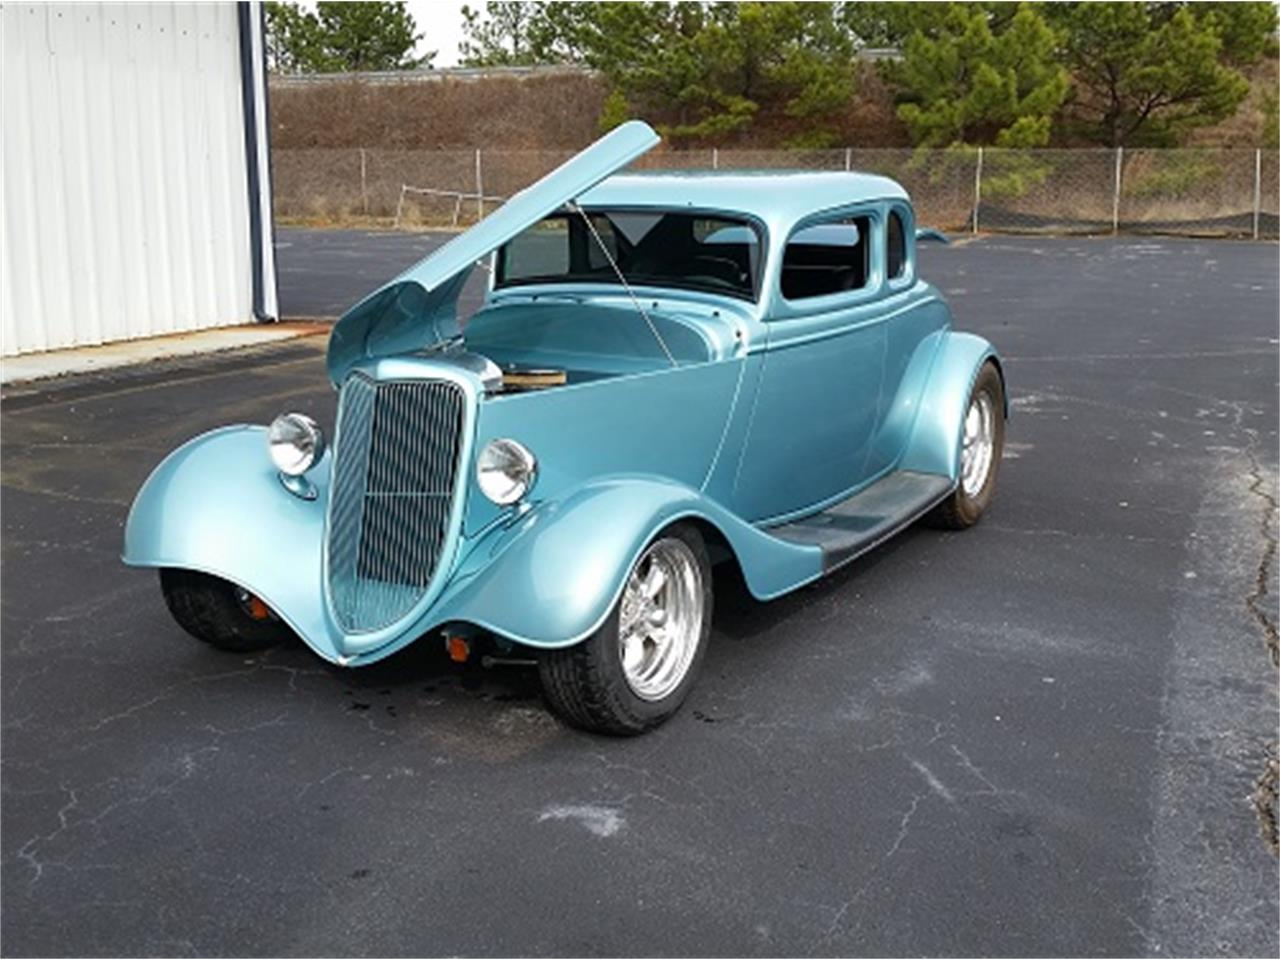 Large Picture of '34 Ford Coupe - $37,500.00 Offered by Dream Cars of the Carolinas - KUCX